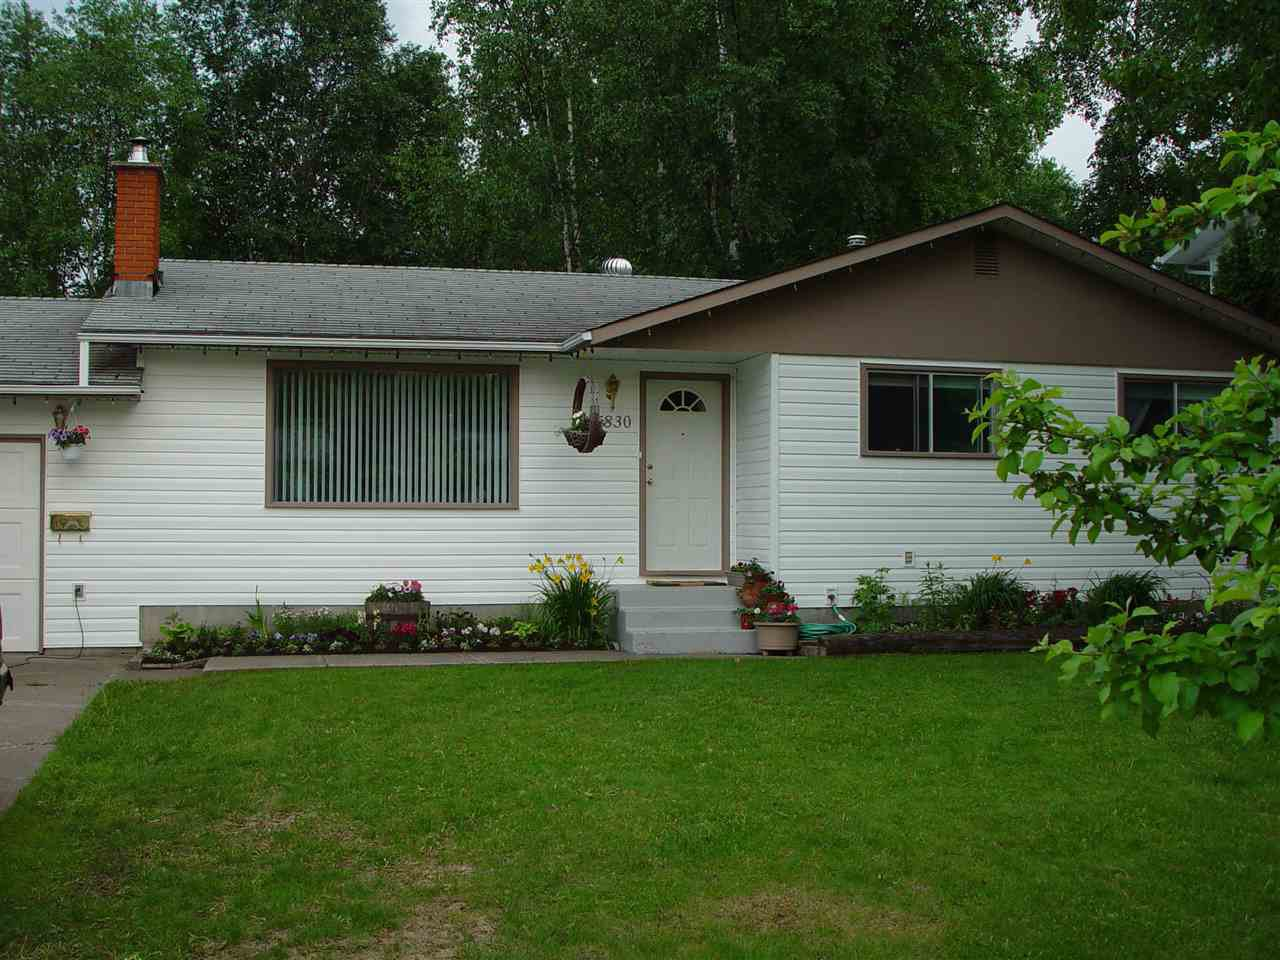 Main Photo: 5830 OXFORD Drive in Prince George: Lower College House for sale (PG City South (Zone 74))  : MLS®# R2428617